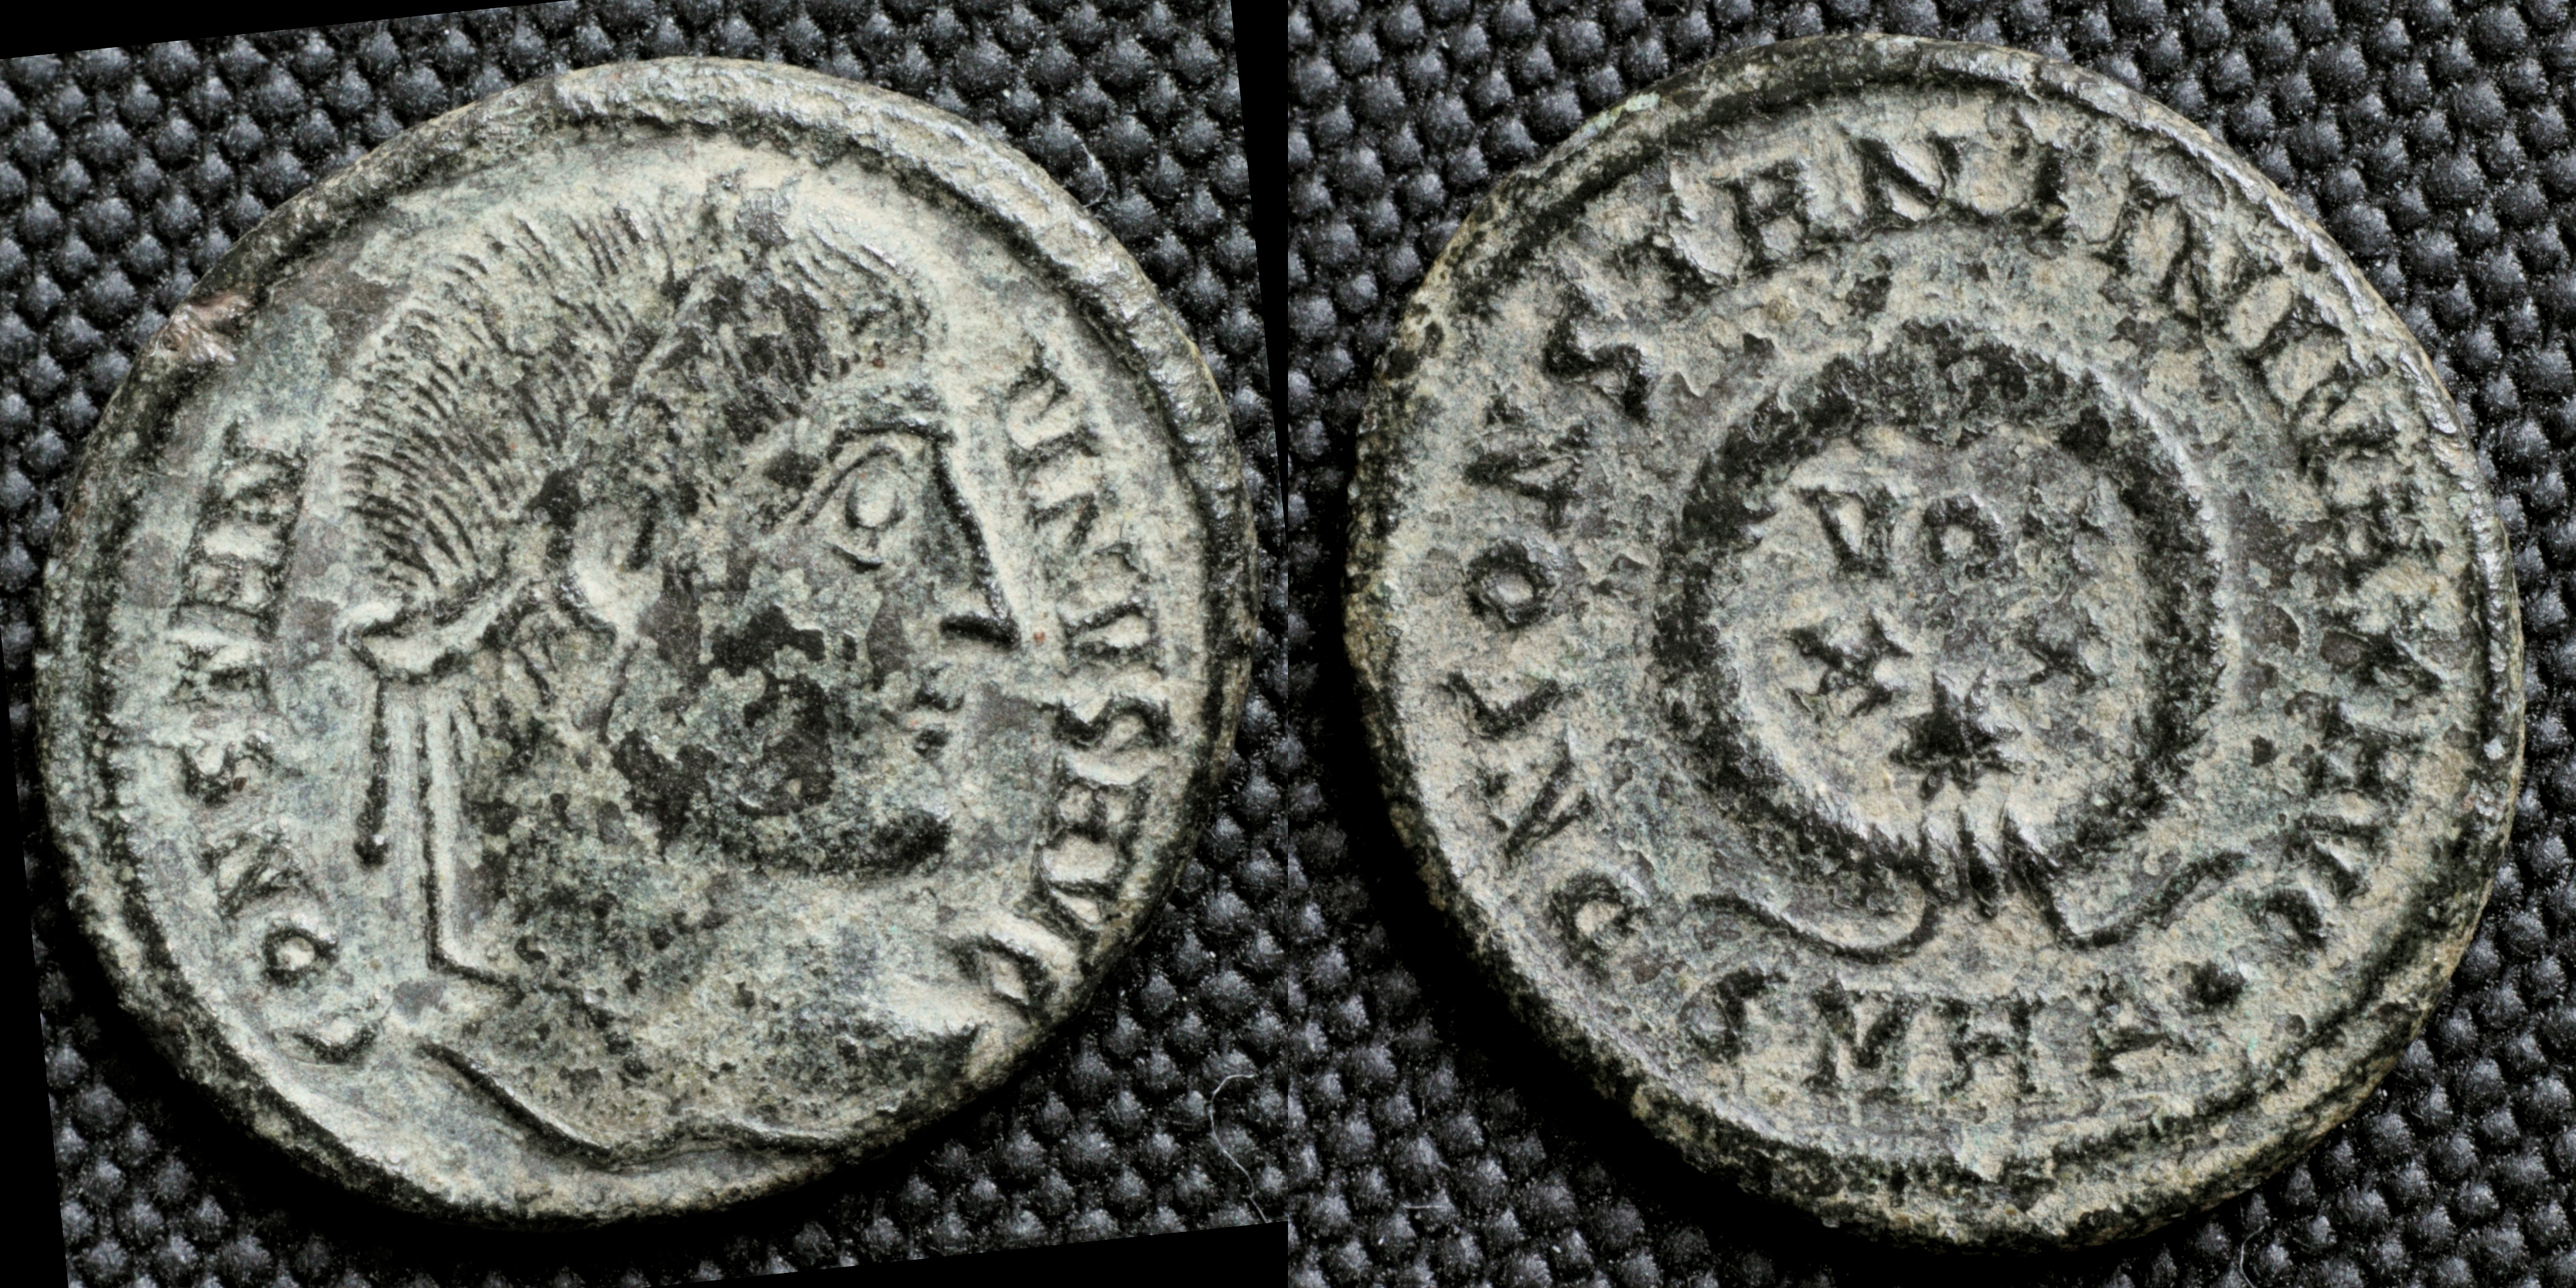 /Files/Images/Coinsite/CoinDB/78_Constantine_I_Heraclea.jpg